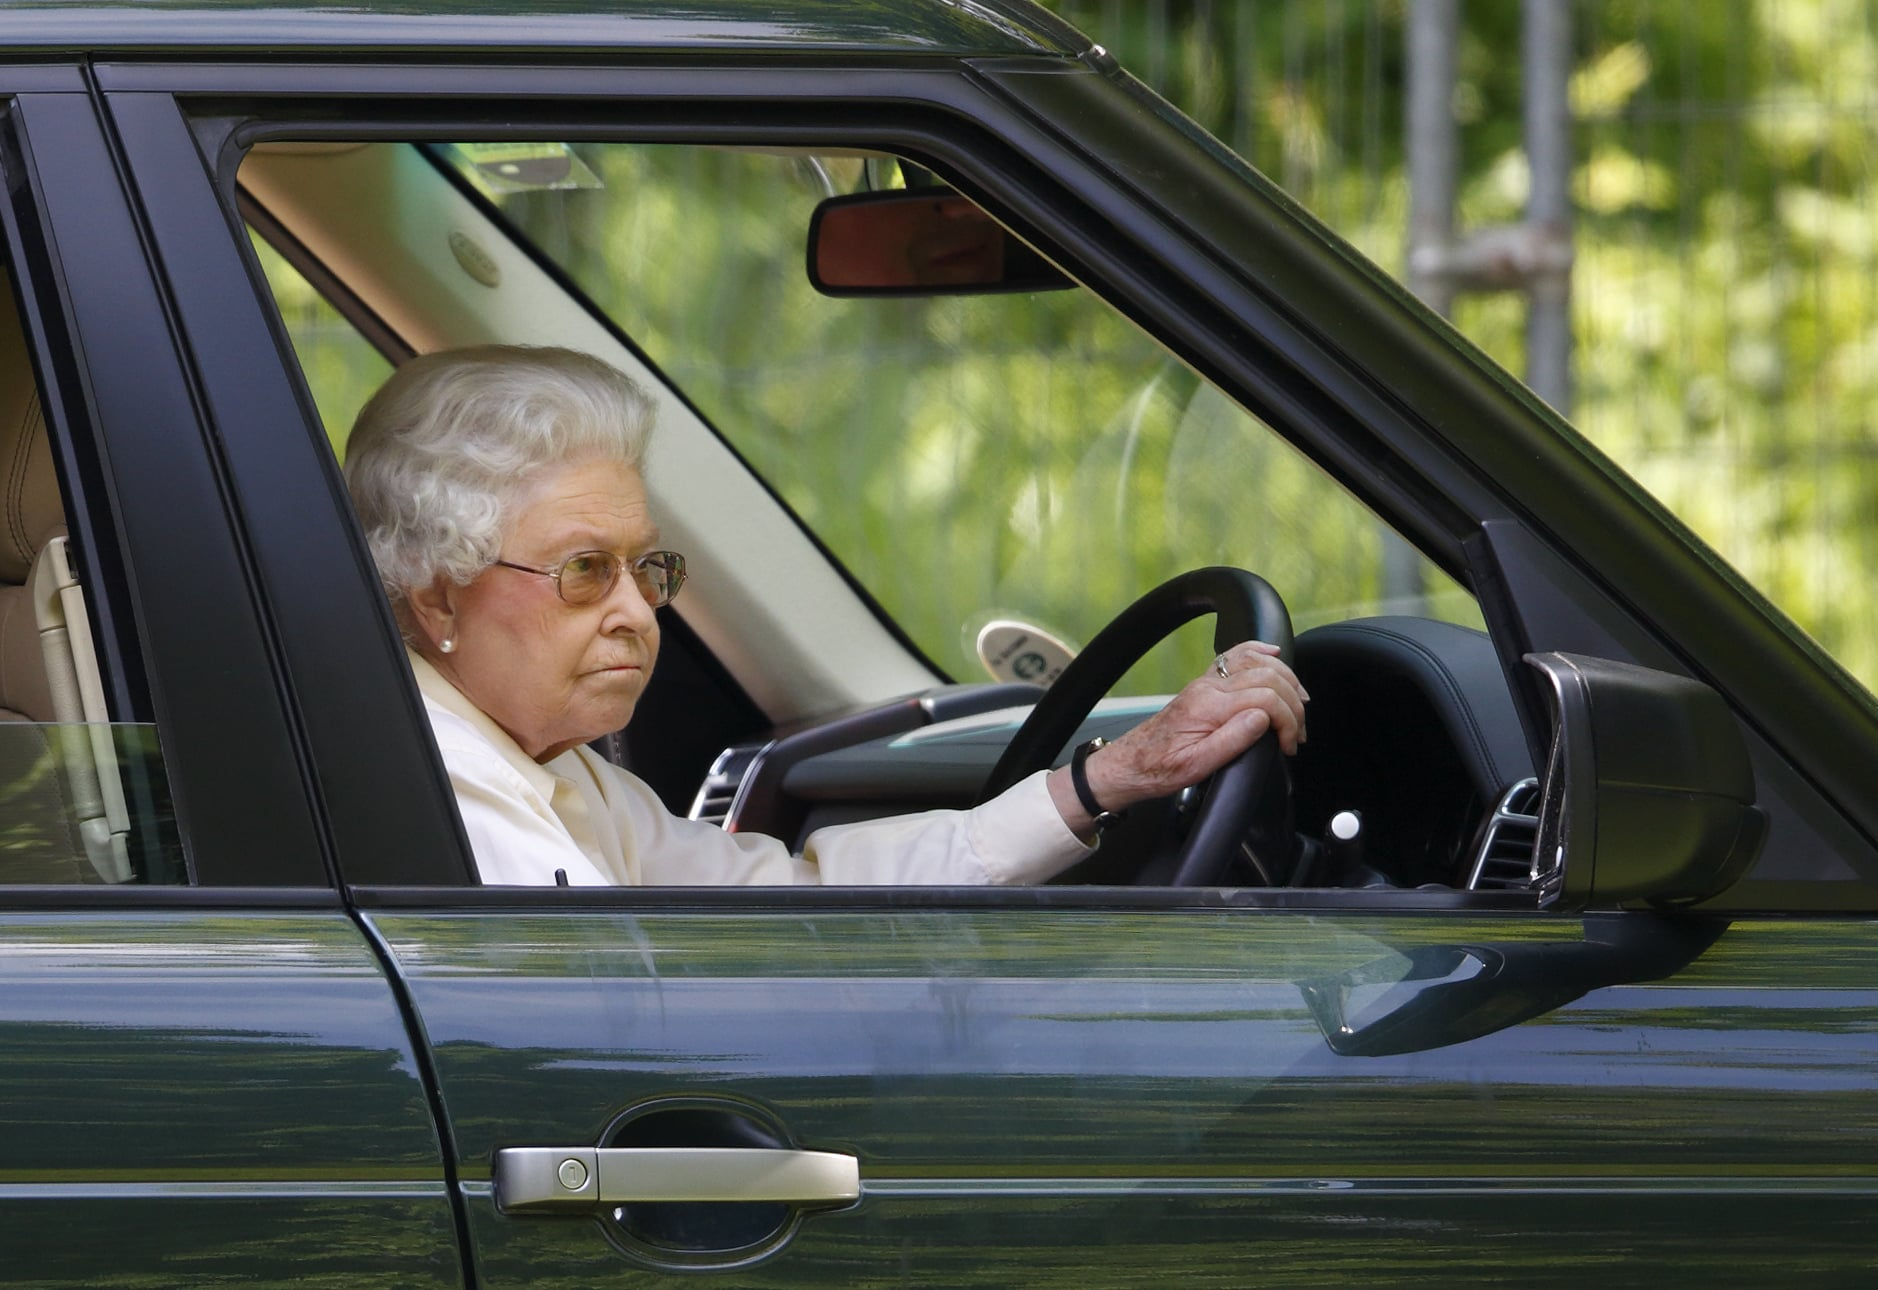 Least: When She Drove Her Own Car